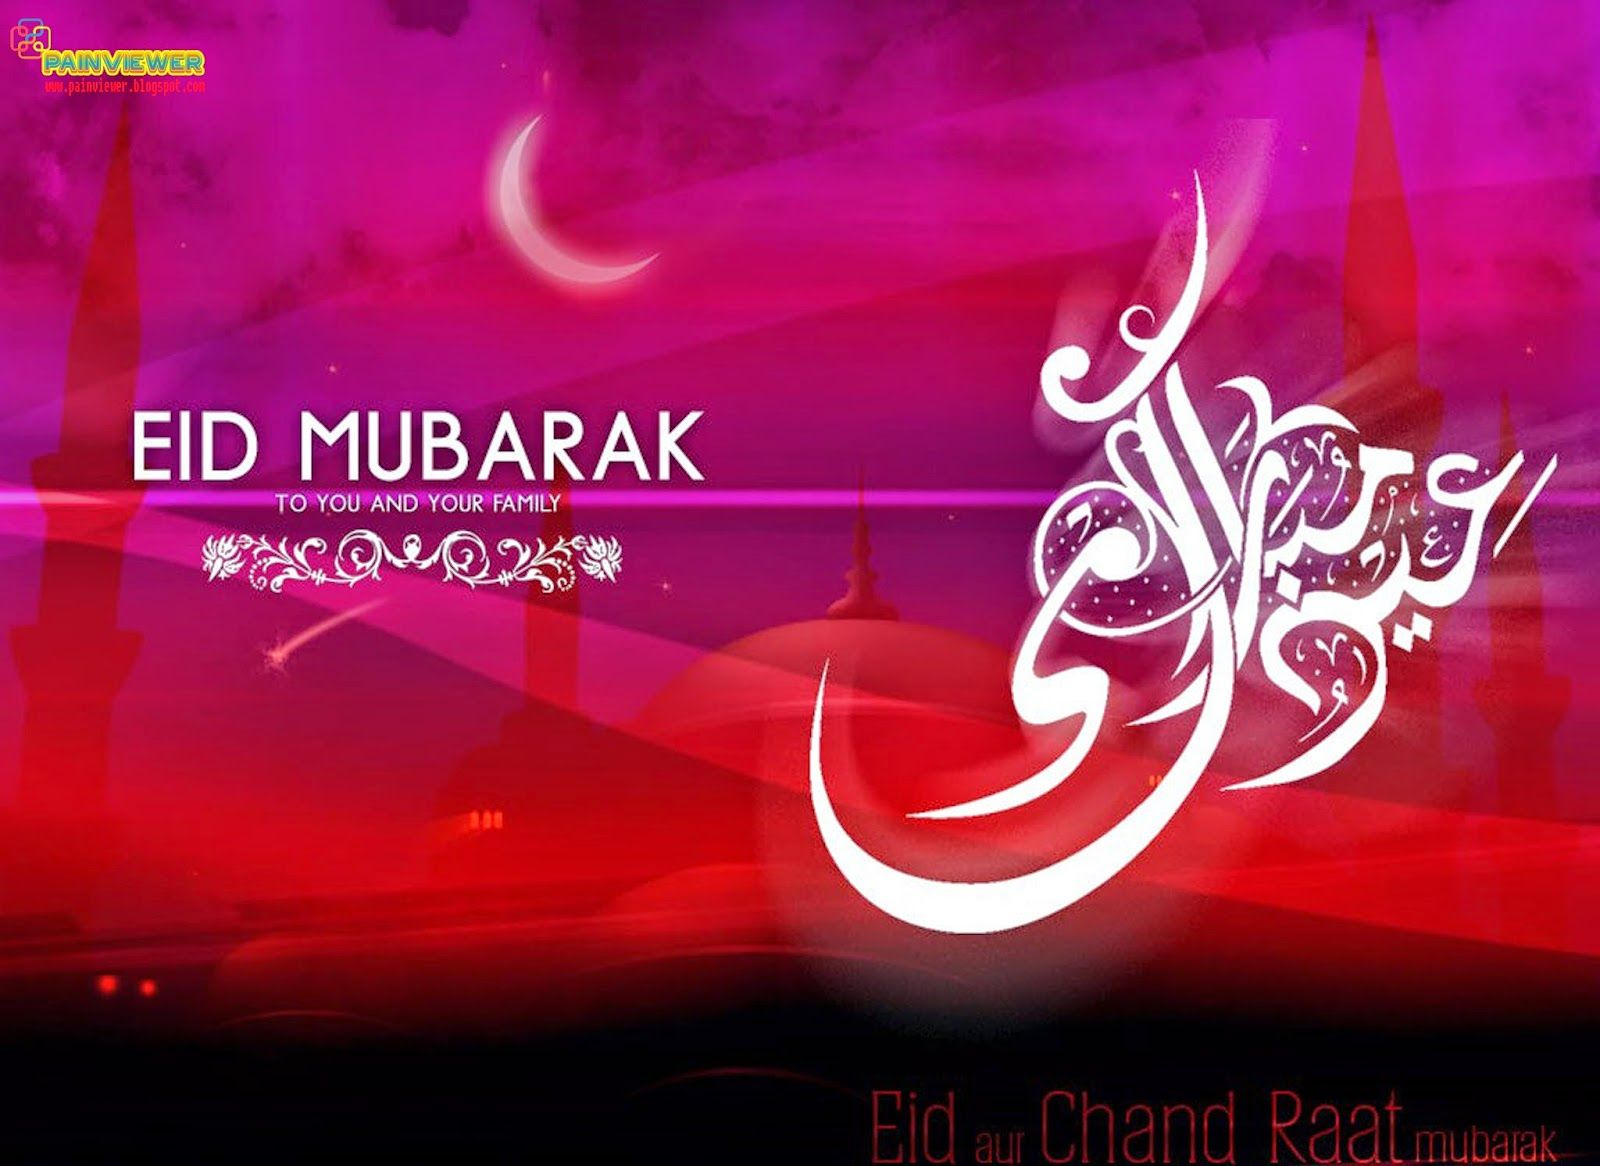 Happy eid ul fitar latest new hd wallpaper 2014 painviewer eid happy eid ul fitar latest new hd wallpaper 2014 painviewer eid cardseid greeting kristyandbryce Image collections